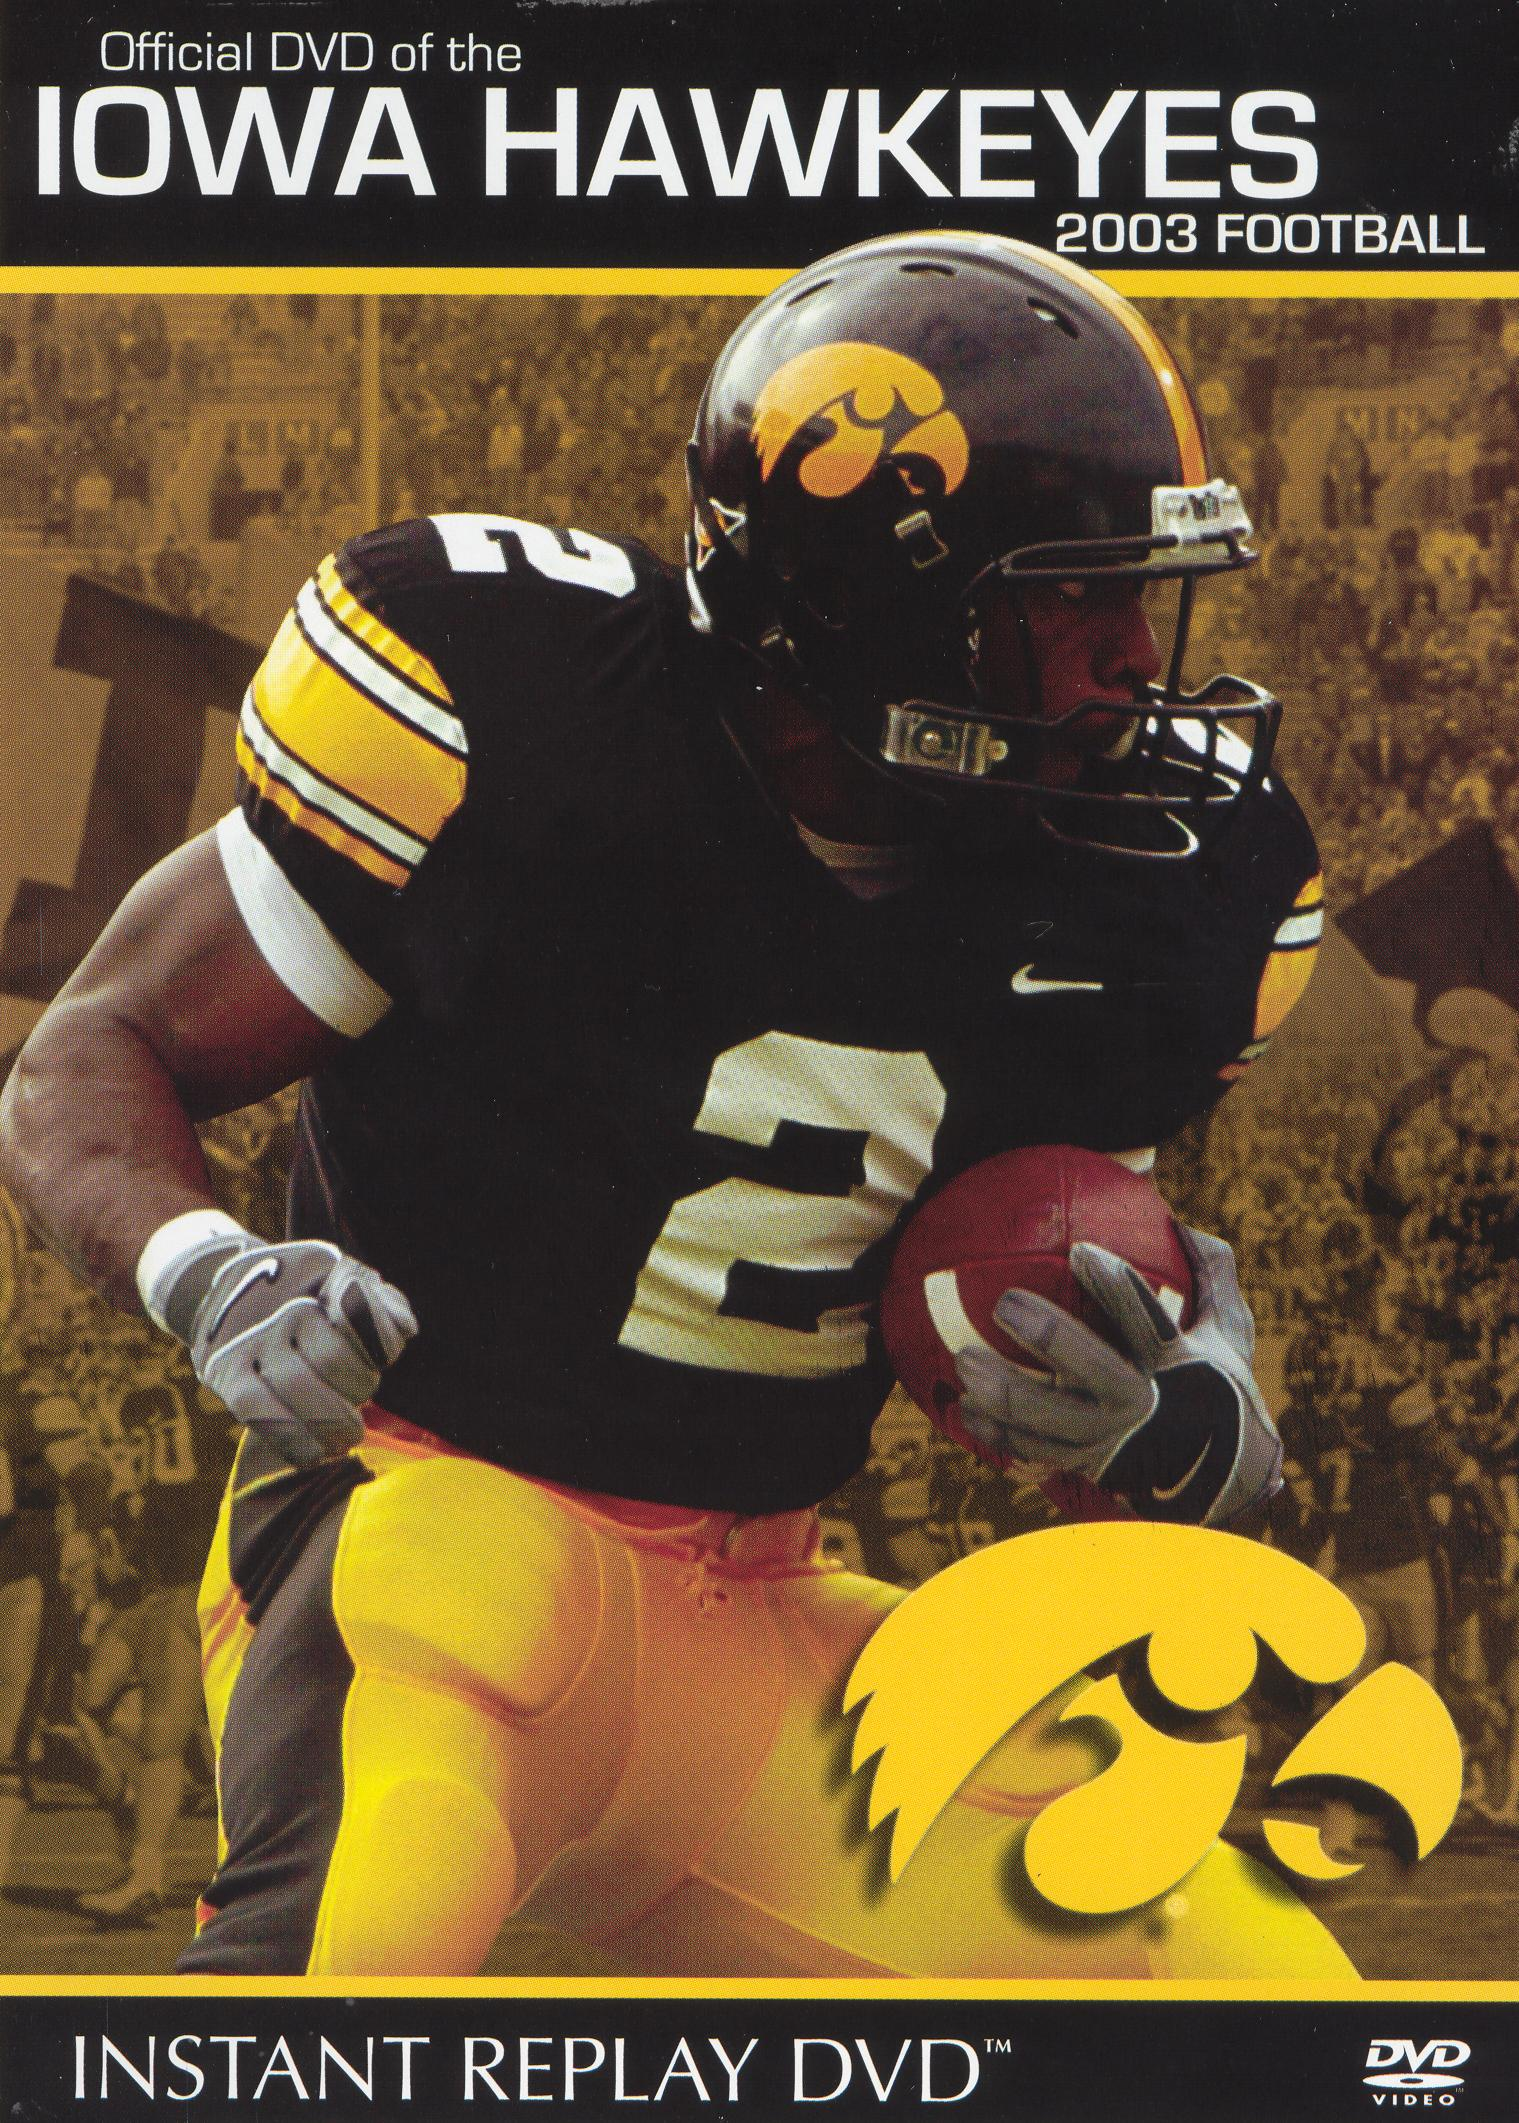 2003 Football Instant Replay: Iowa Hawkeyes